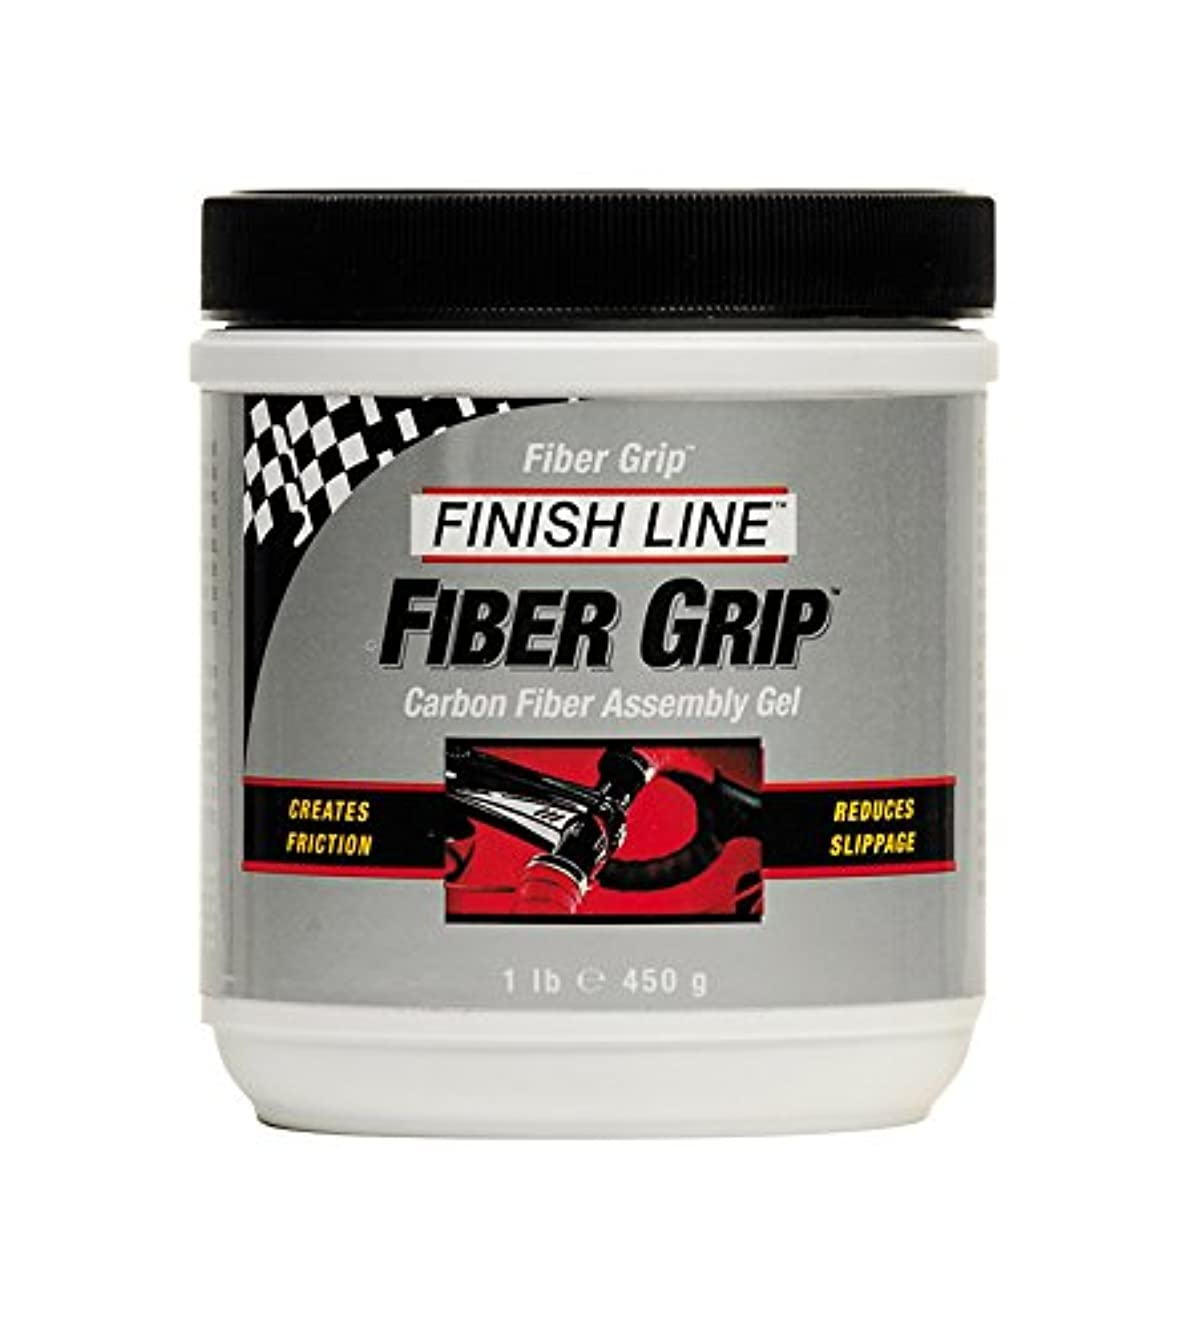 Finish Line Fiber Grip Carbon Fiber Bicycle Assembly Gel